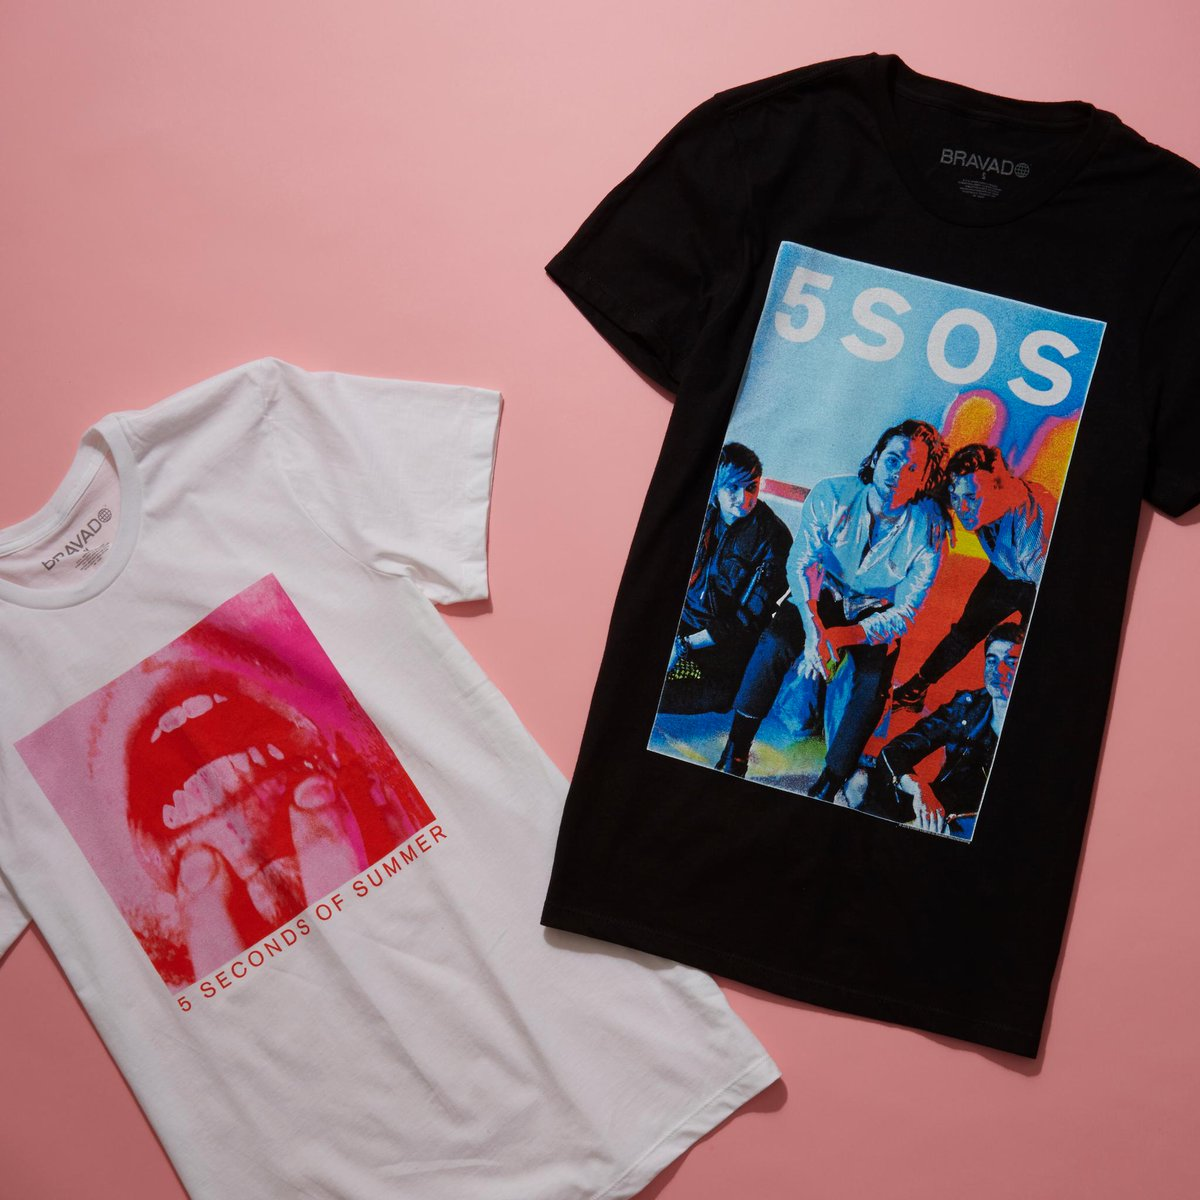 Hot Topic On Twitter New Tour And New Album Means New Merch